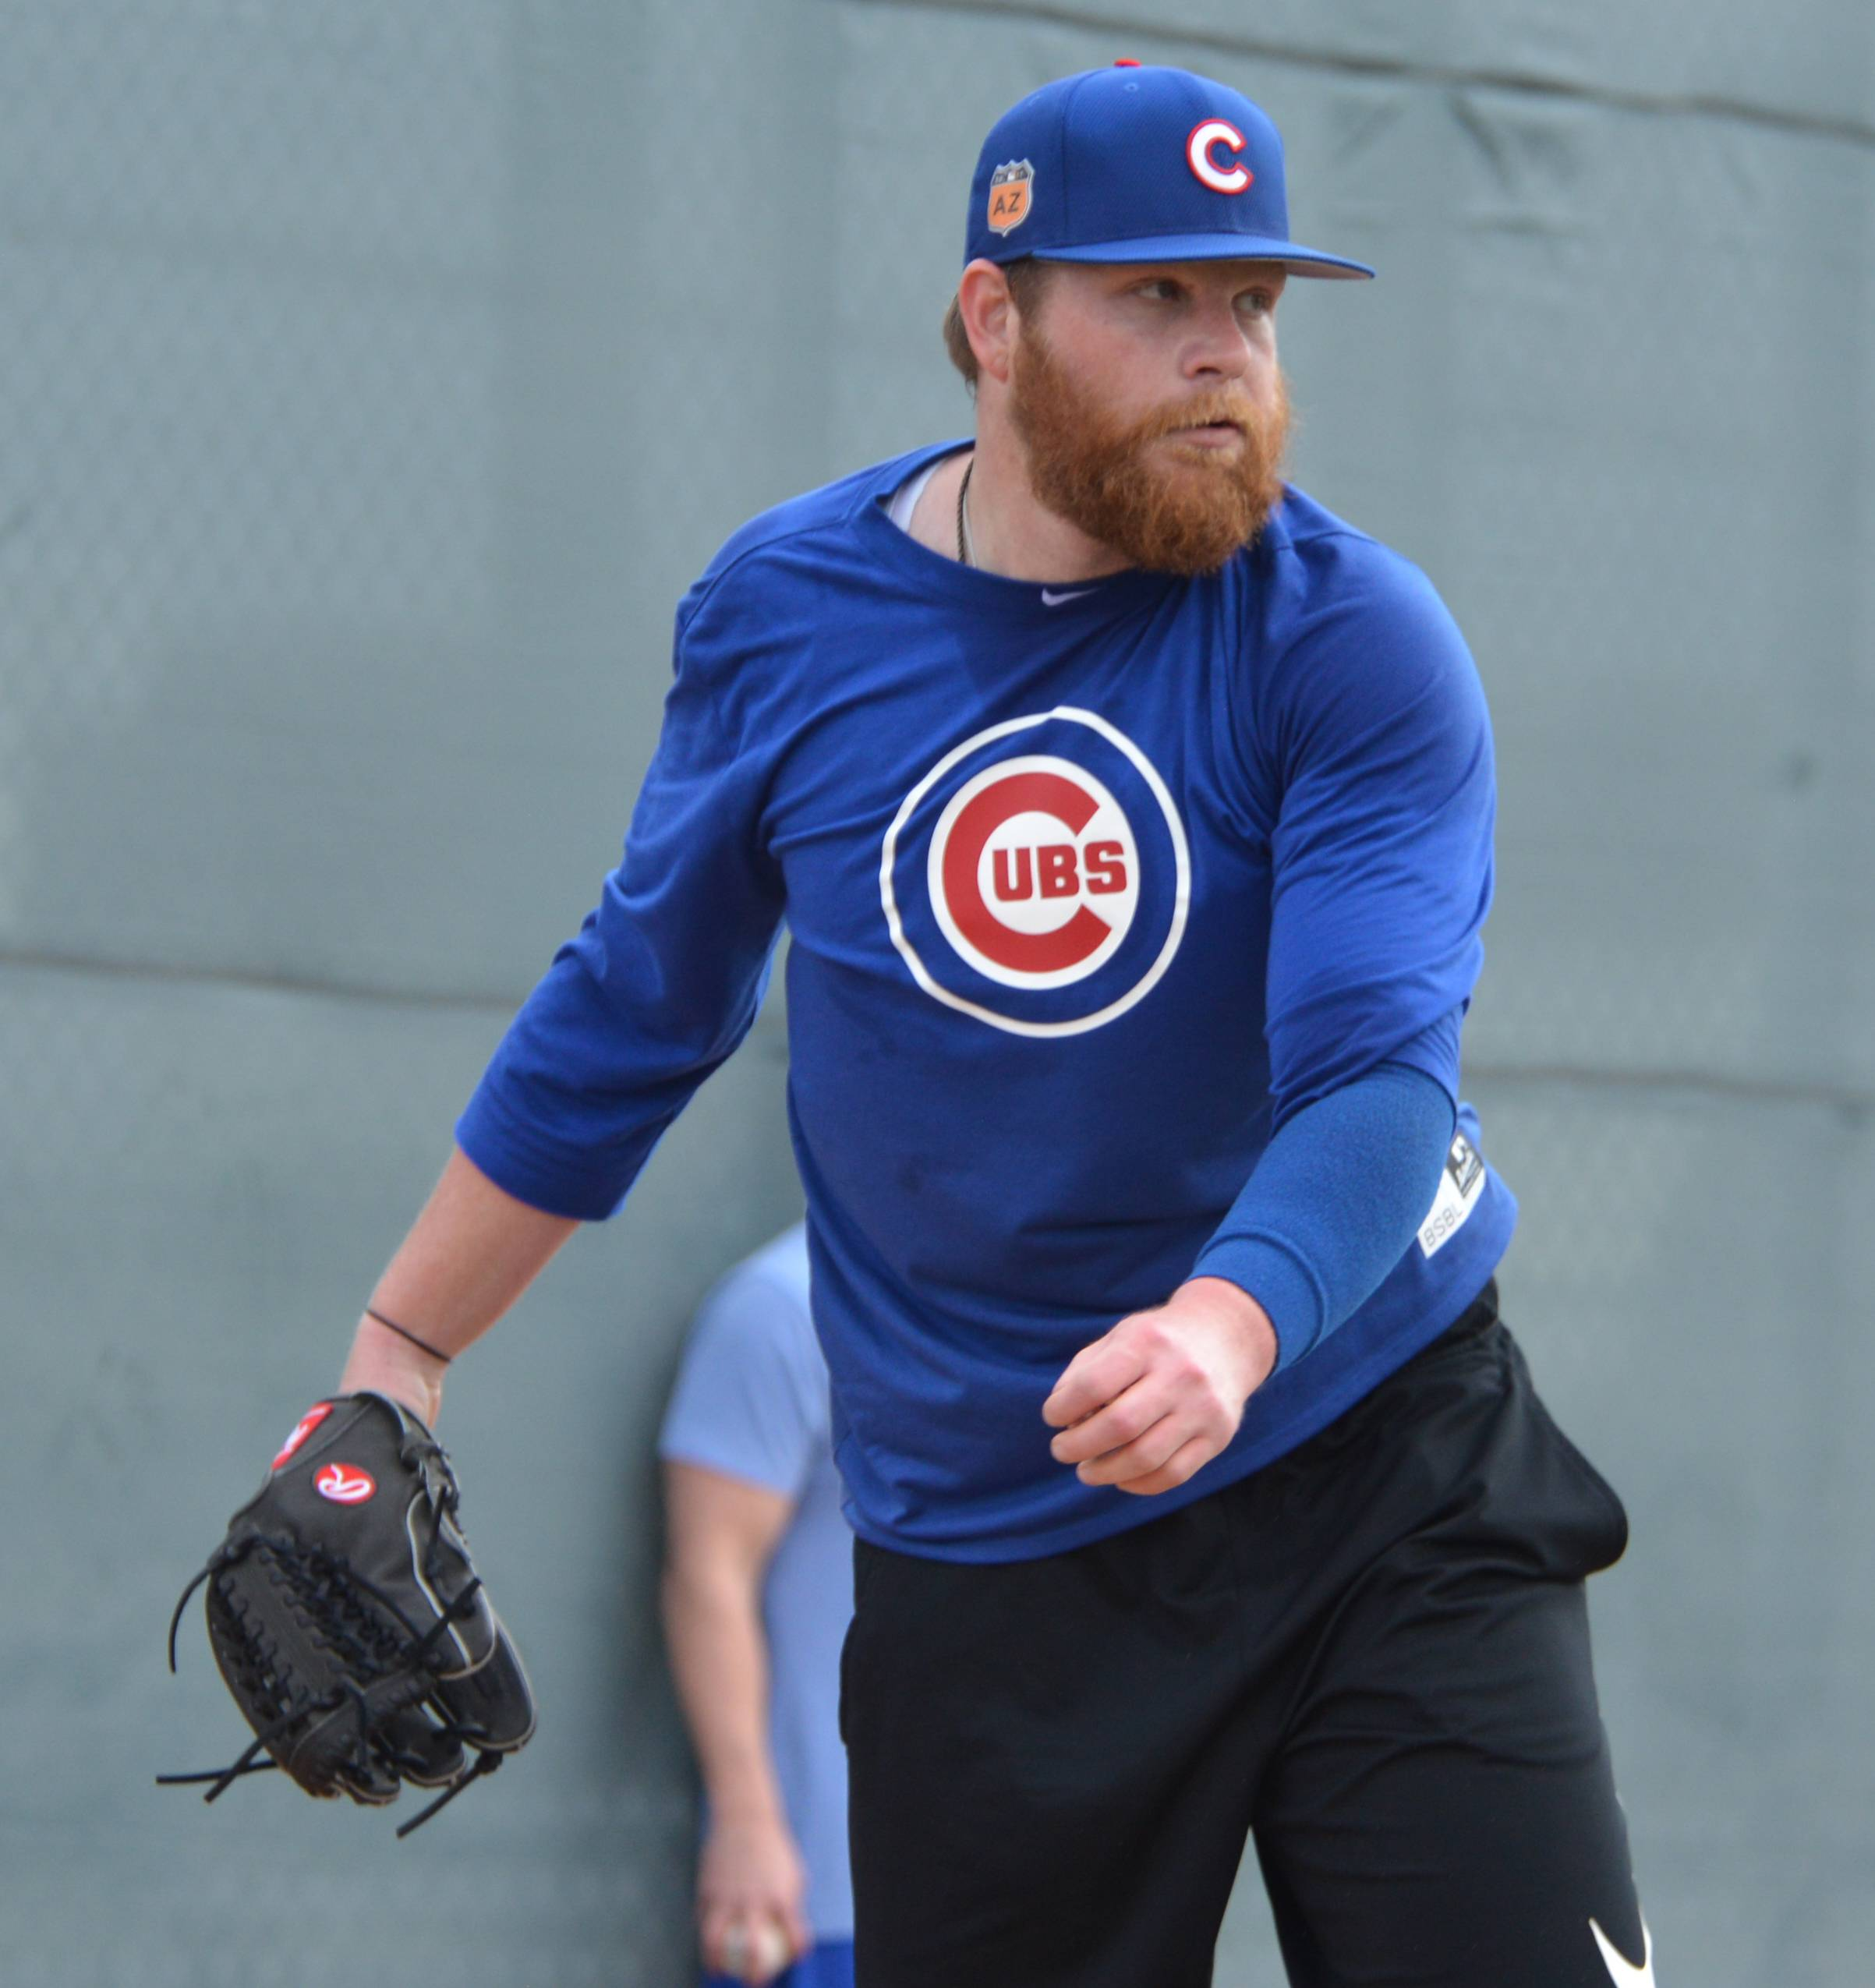 Left-hander Brett Anderson, who was with the Dodgers last season, is trying to win a spot in the Cubs rotation as a fifth starter.